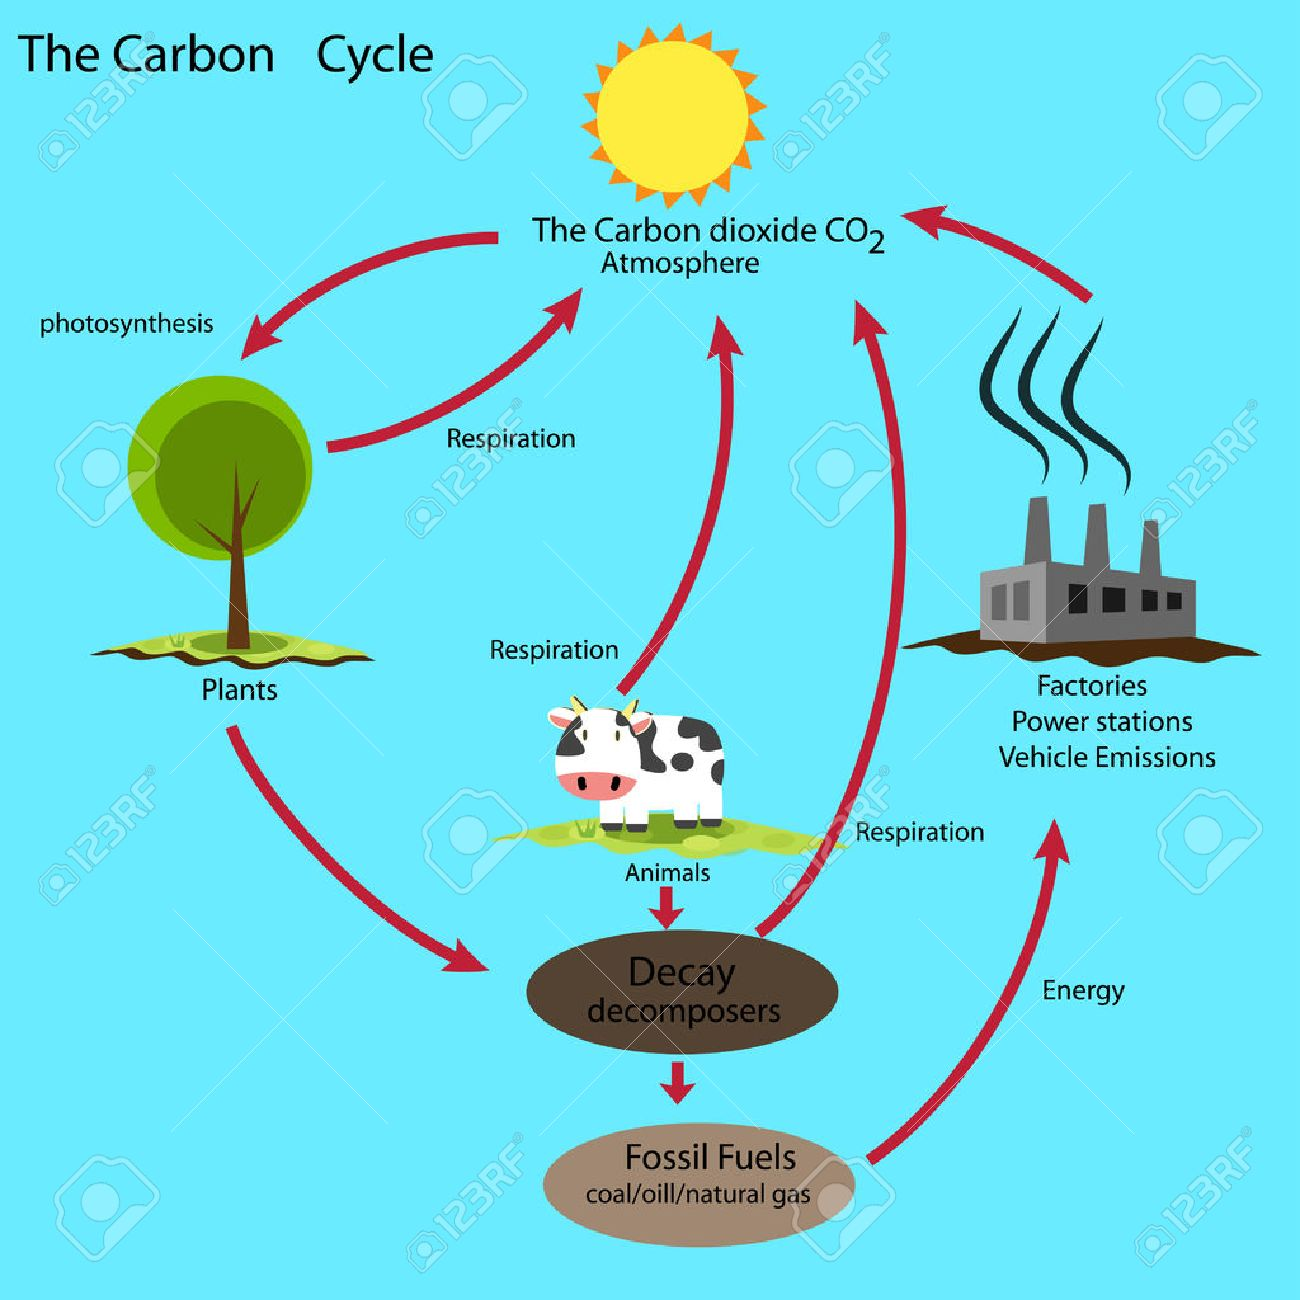 Carbon cycle royalty free cliparts vectors and stock illustration carbon cycle ccuart Choice Image